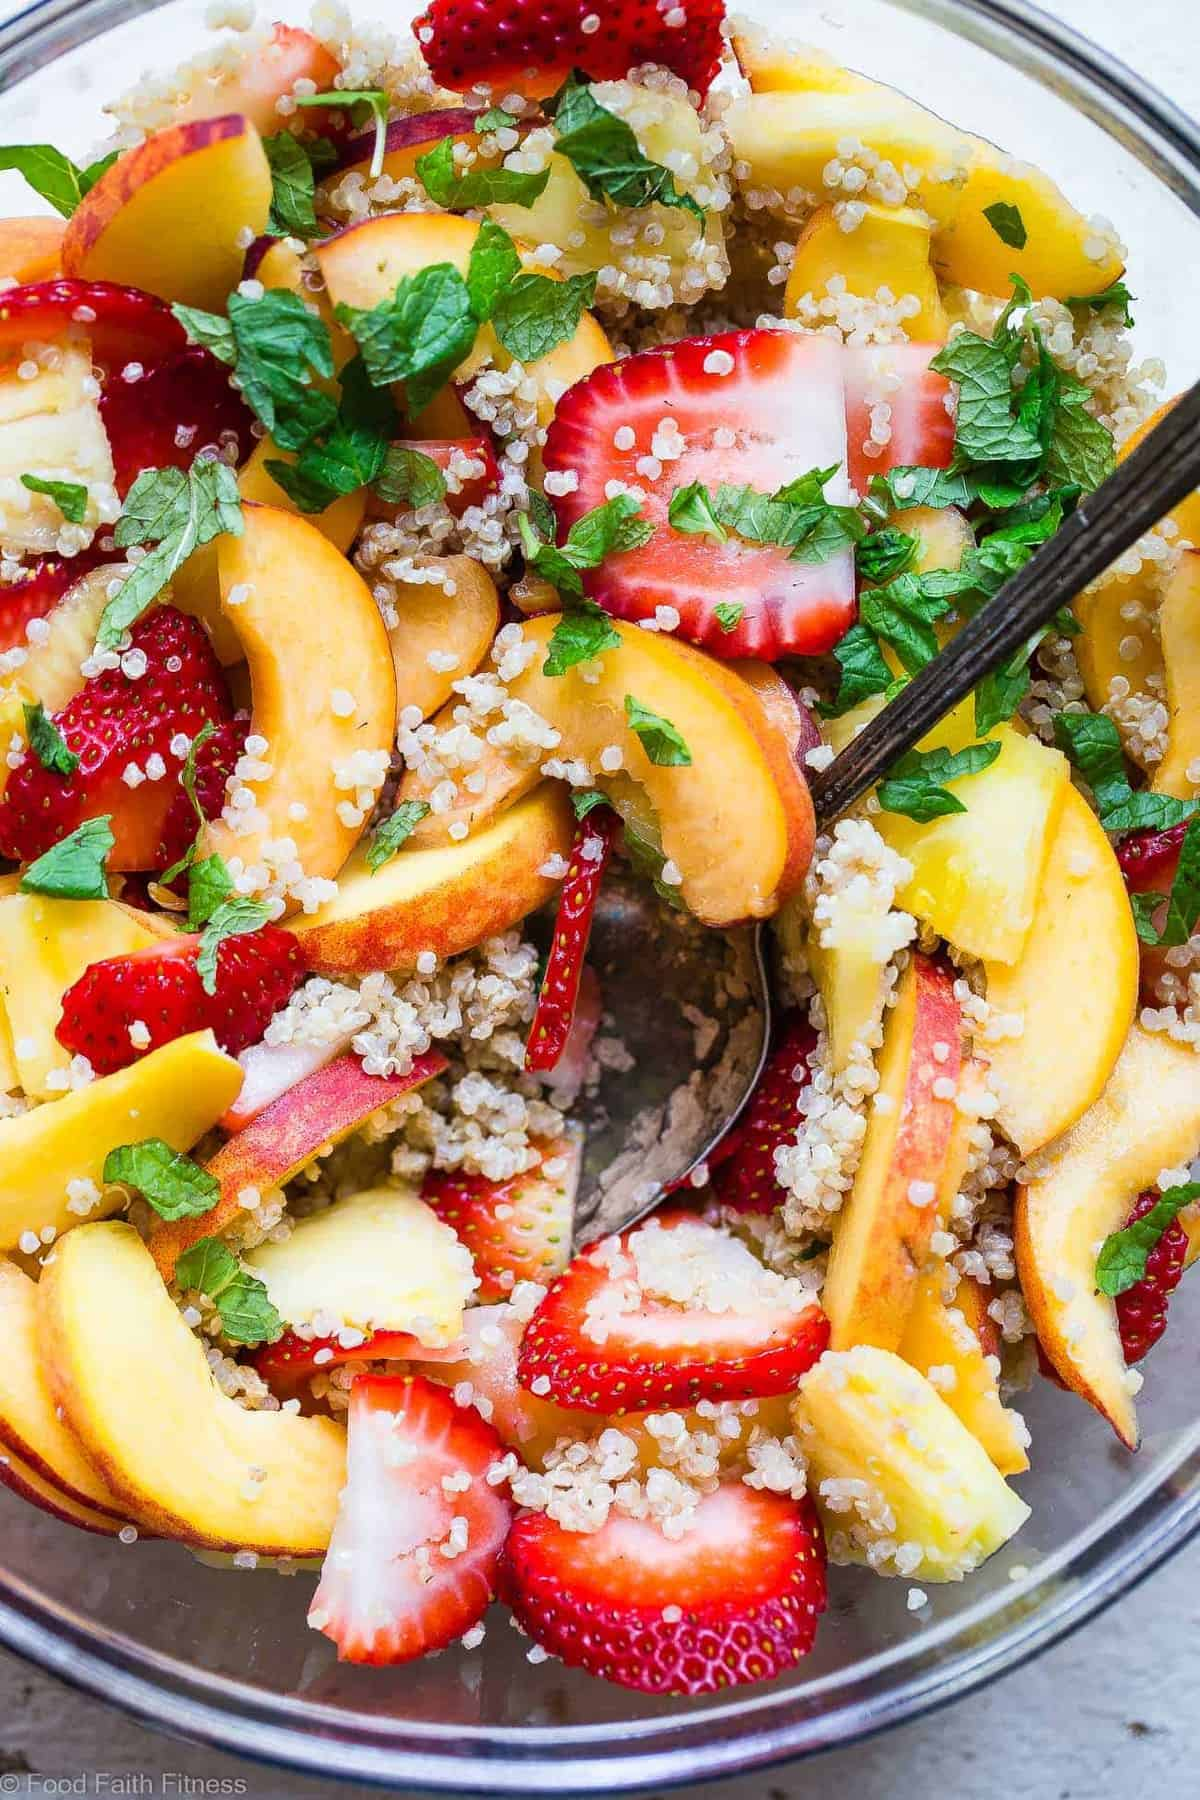 Honey Lime Quinoa Fruit Salad -This honey lime Coconut Milk Quinoa Fruit Salad is loaded with fresh, juicy fruit and a sweet and tangy dressing! The perfect healthy, gluten free and vegan side dish or brunch item for Summer! | #Foodfaithfitness | #Glutenfree #Vegan #Healthy #Dairyfree #Quinoa